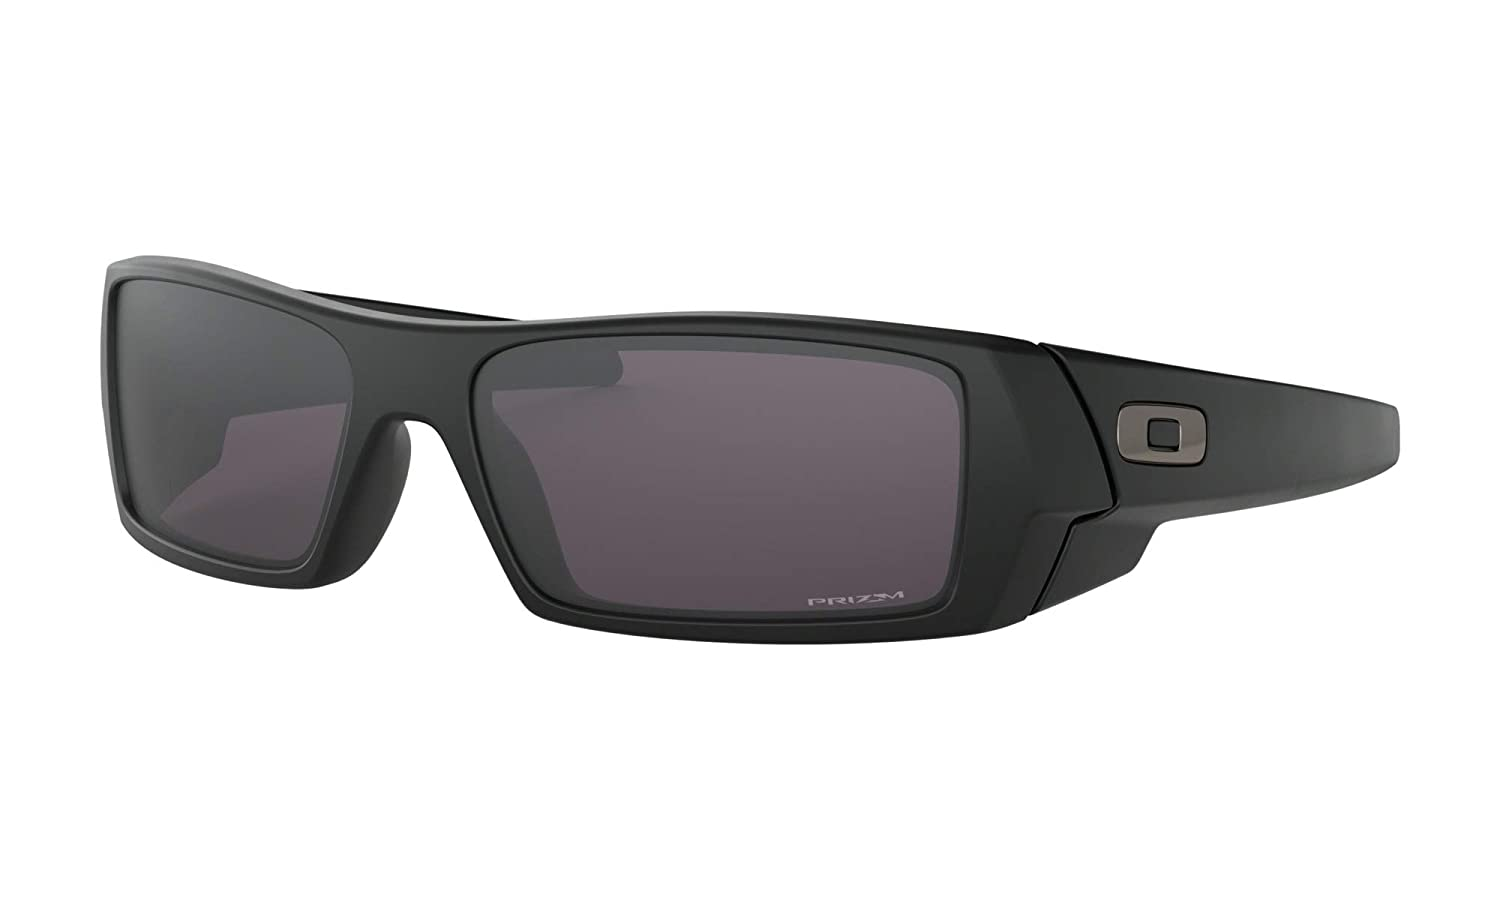 Oakley Men s Standard Issue Gascan Uniform Collection Sunglasses,OS,Matte Black Prizm Grey